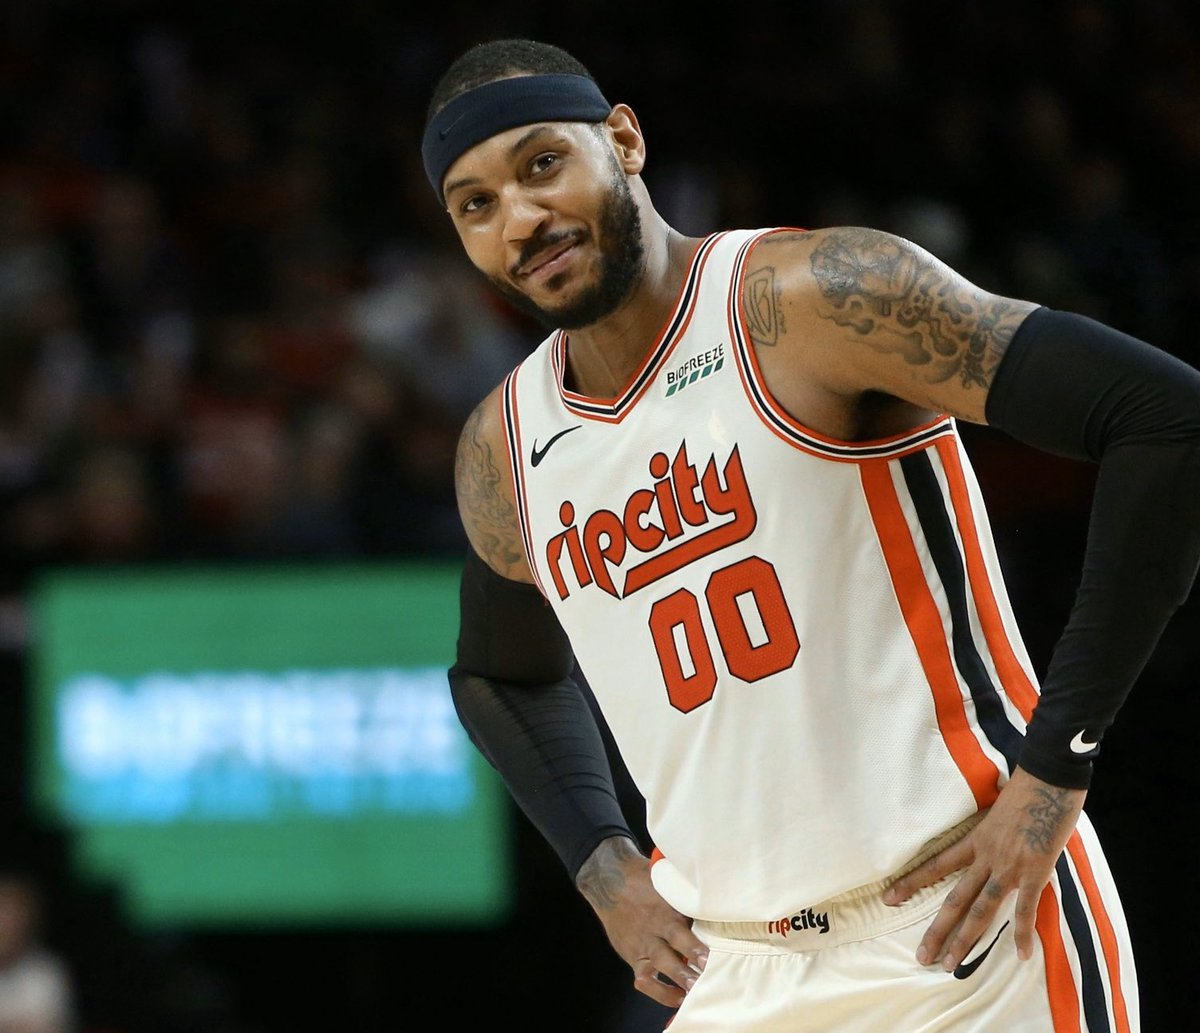 November 27th 2019 - Ian Karmel attends the Trail Blazers first home game with Carmelo Anthony on the team.   December 2nd 2019 - Carmelo Anthony wins Western Conference Player of the Week.   Coincidence?